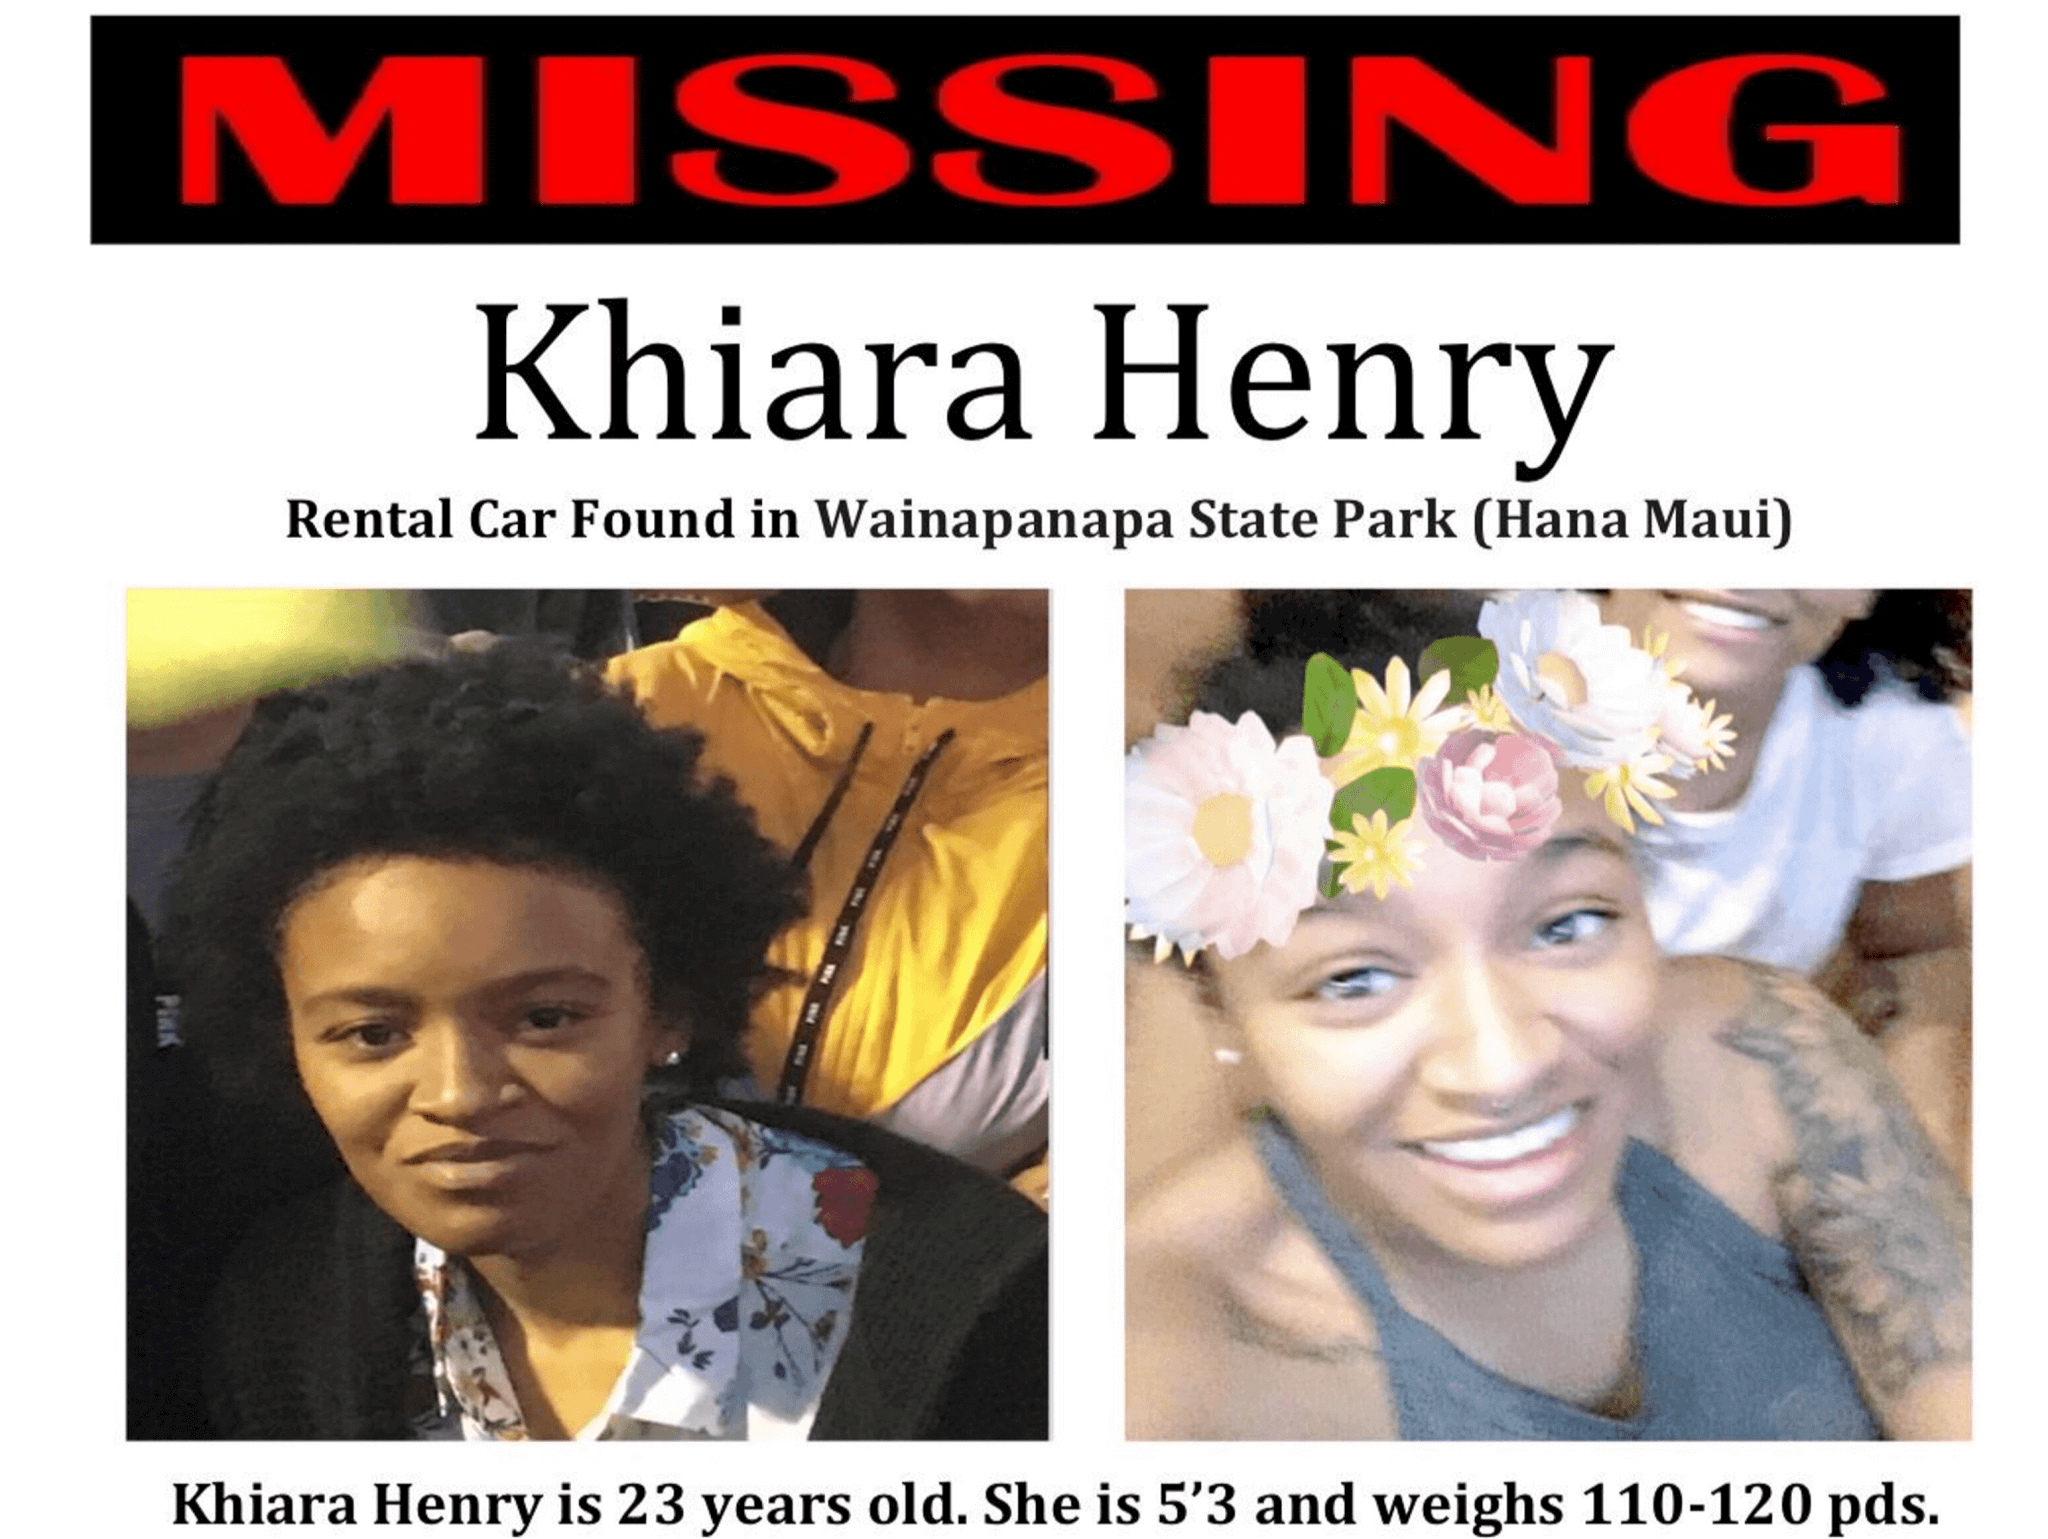 Missing poster of Khiara Henry, woman missing in Maui